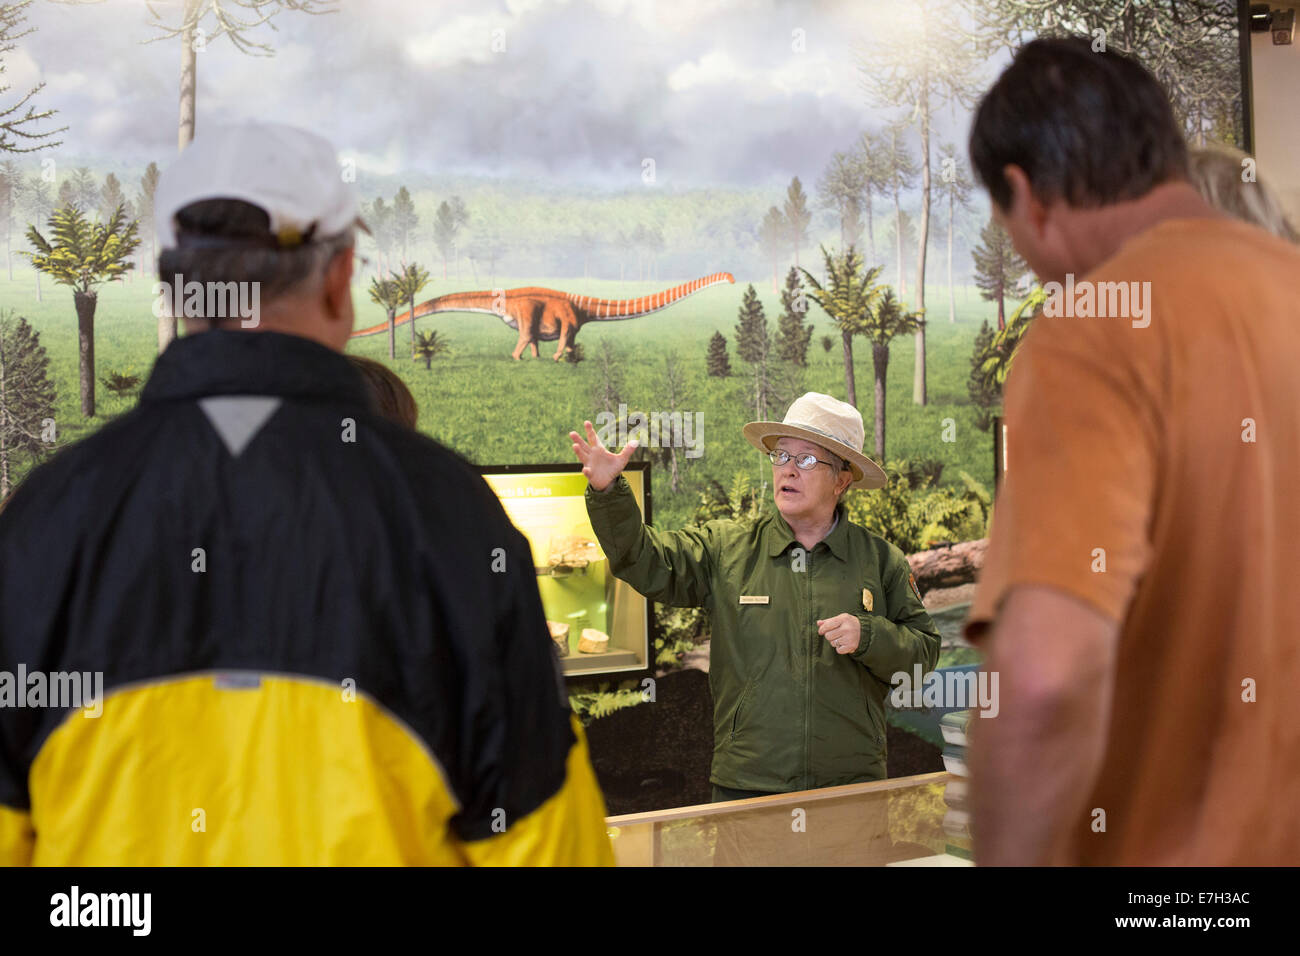 Jensen, Utah - A park ranger talks with visitors in the Quarry Exhibit Hall at Dinosaur National Monument. - Stock Image